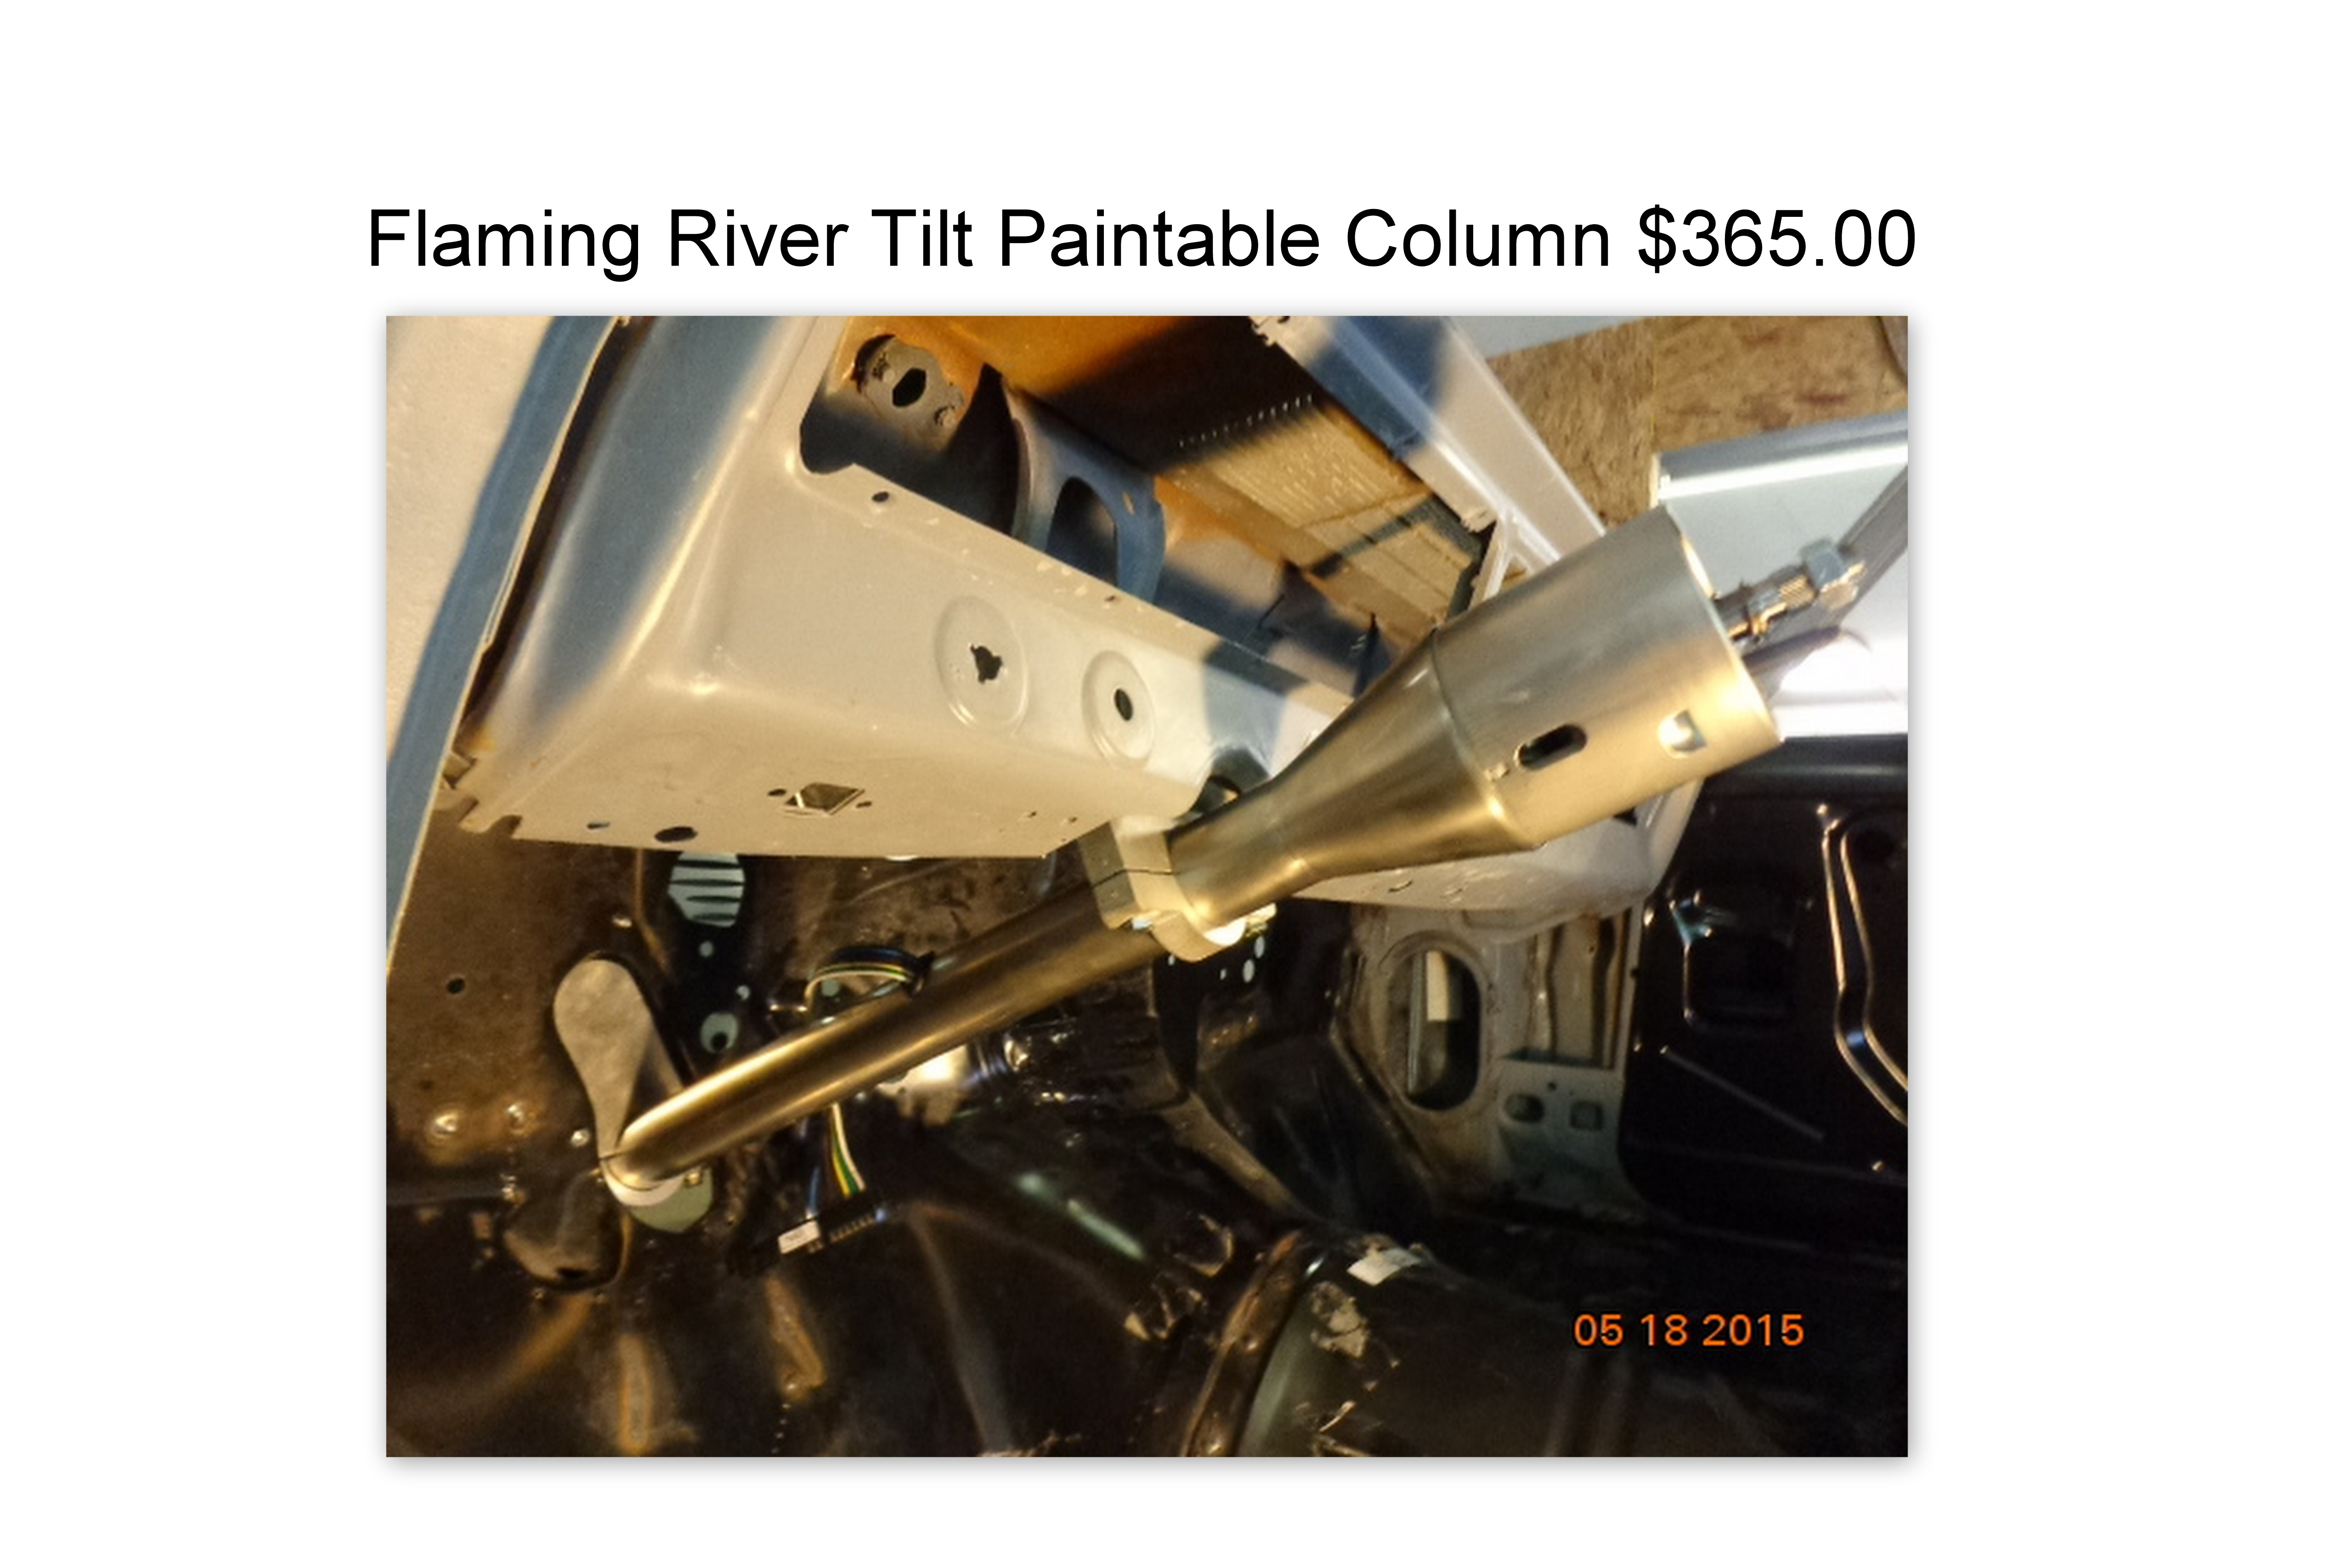 FL tilt paintable column